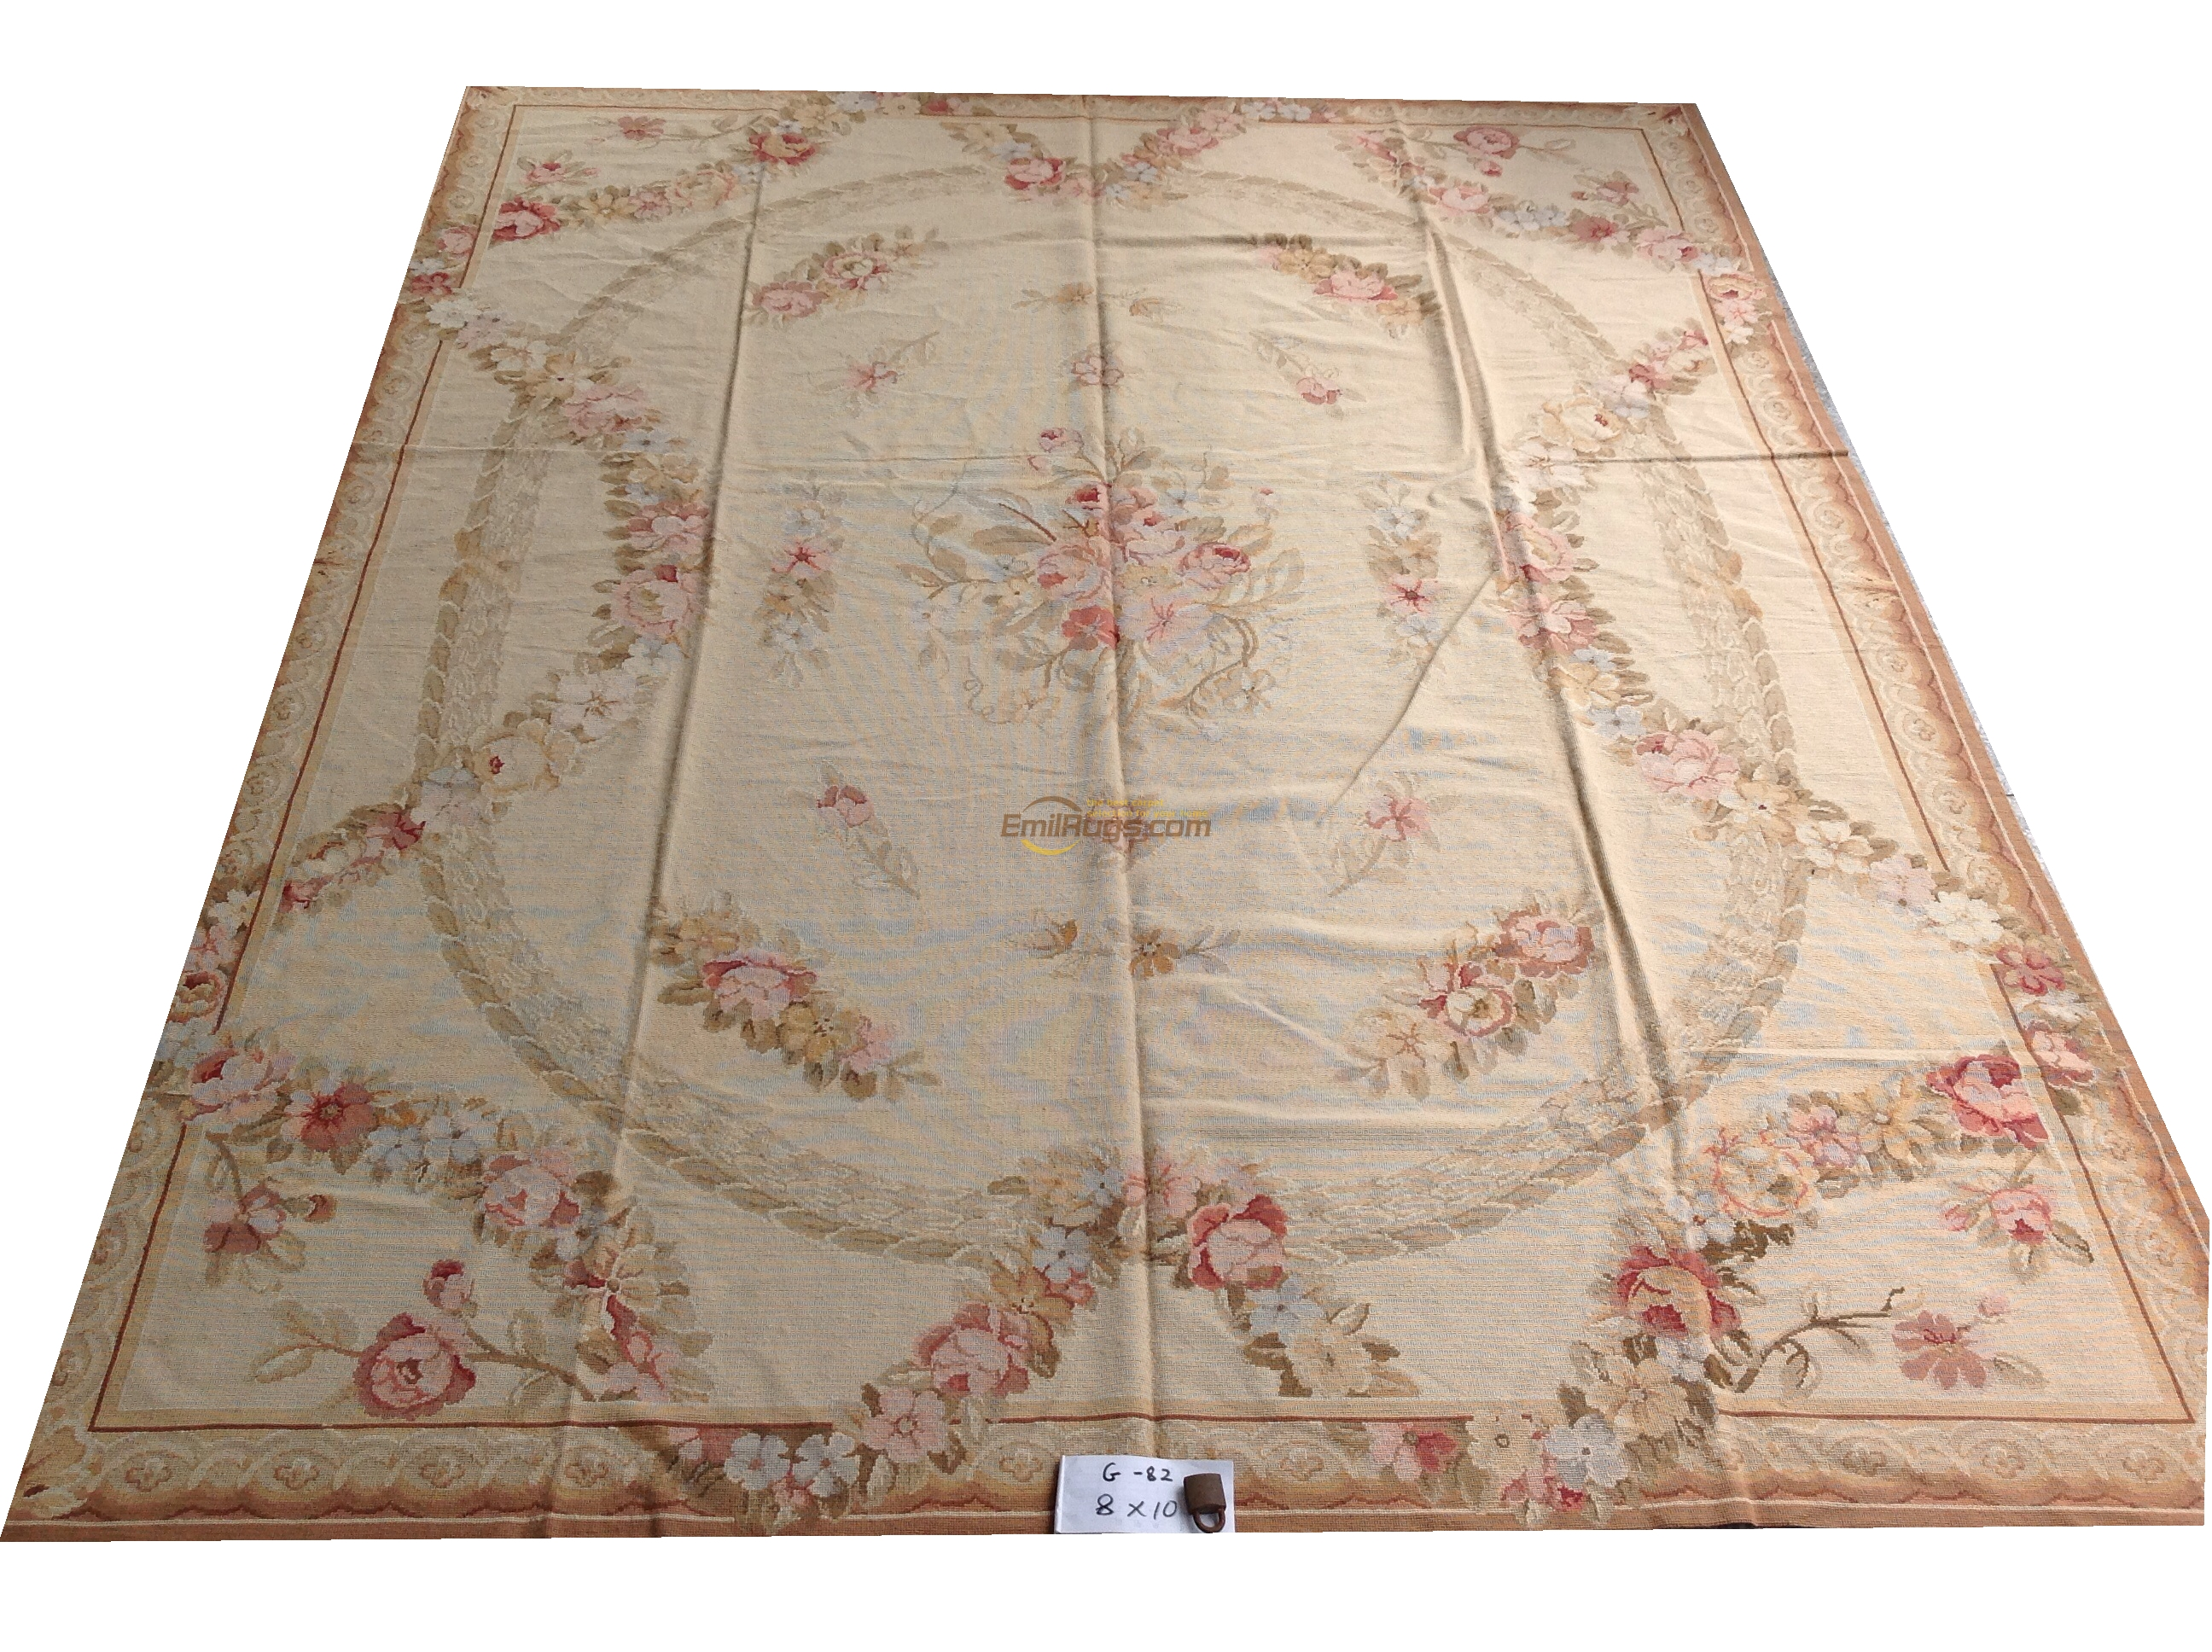 Tappeti Aubusson Vintage Us 1523 2 100 Wool Hand Stitched Needlepoint Carpets Needleopint Rugs 244cmx305cm 8 X 10 Palace Aubusson Pattern Rose Gc8nee68 In Carpet From